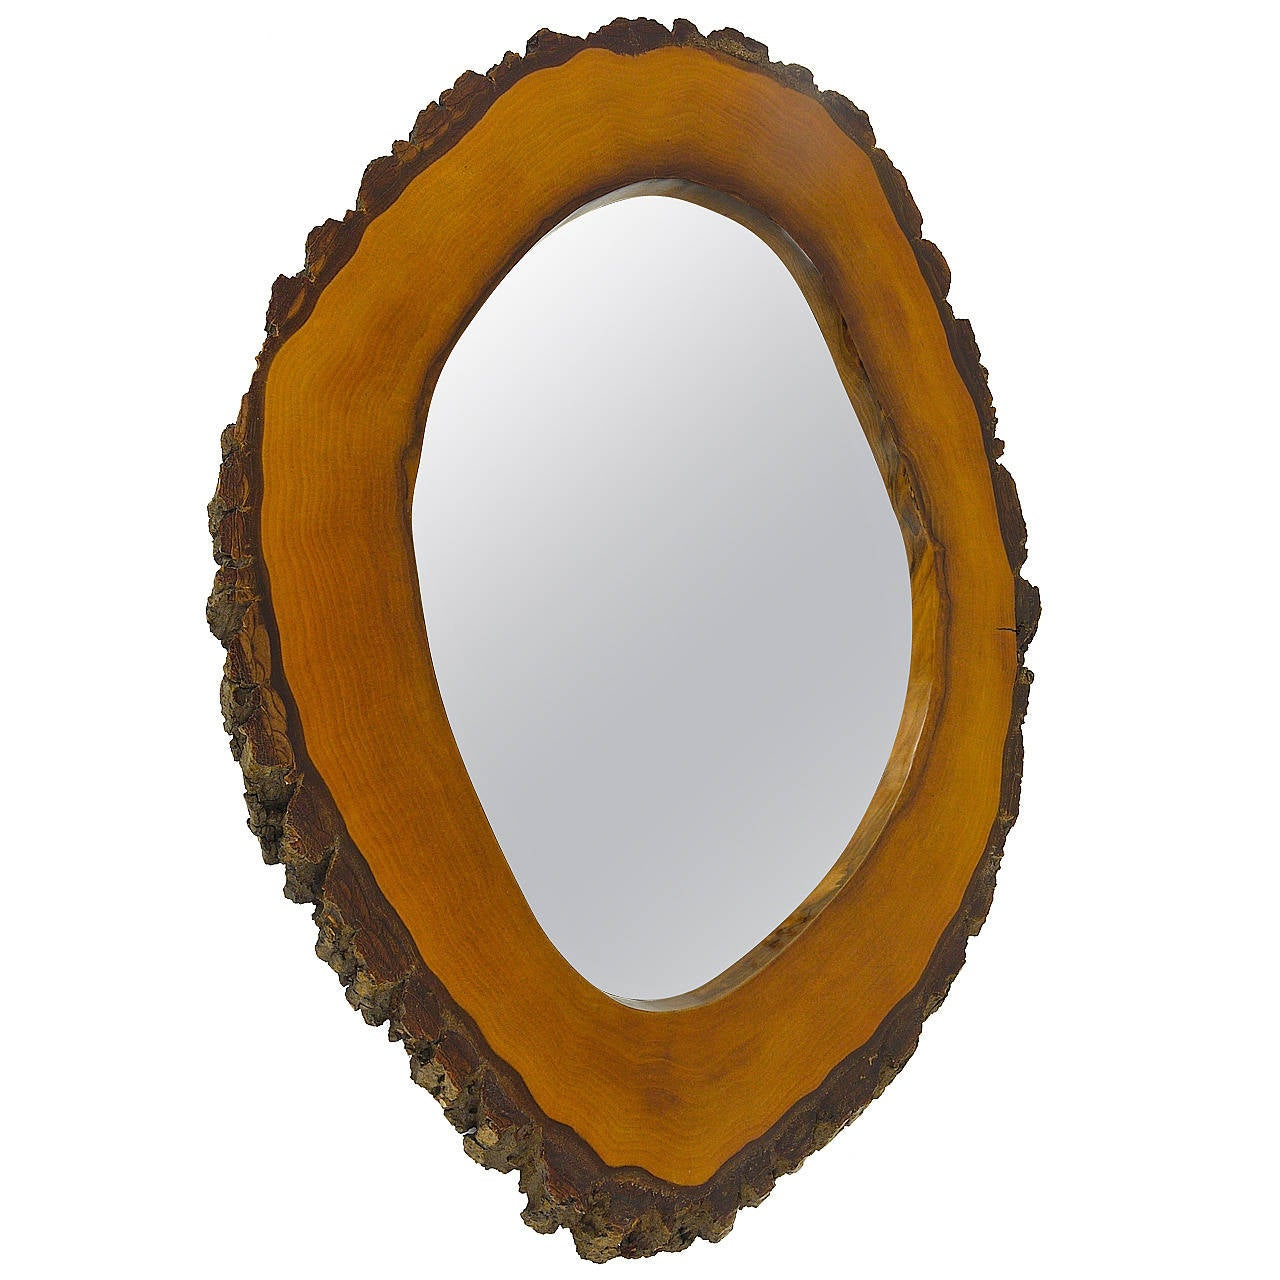 Modernist Walnut Wall Mirror by Carl Aubock, Austria, 1950s